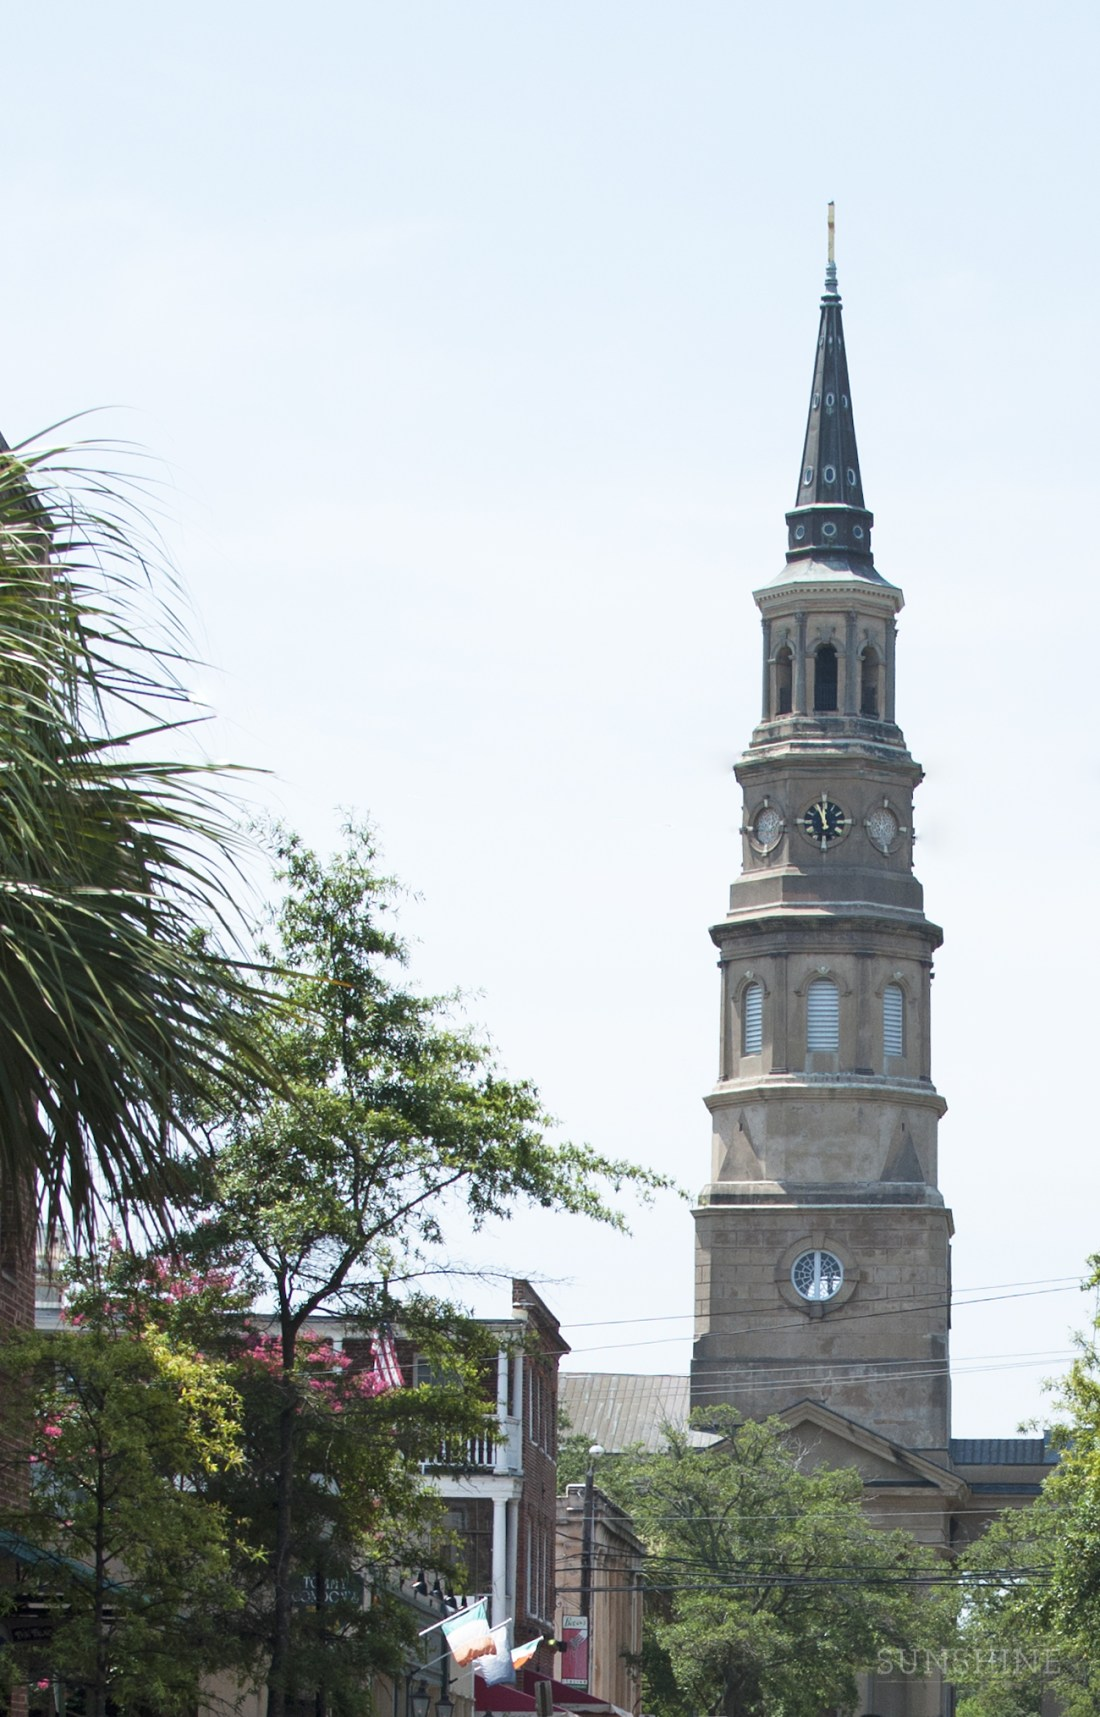 Snapshots from wandering around Charleston, SC